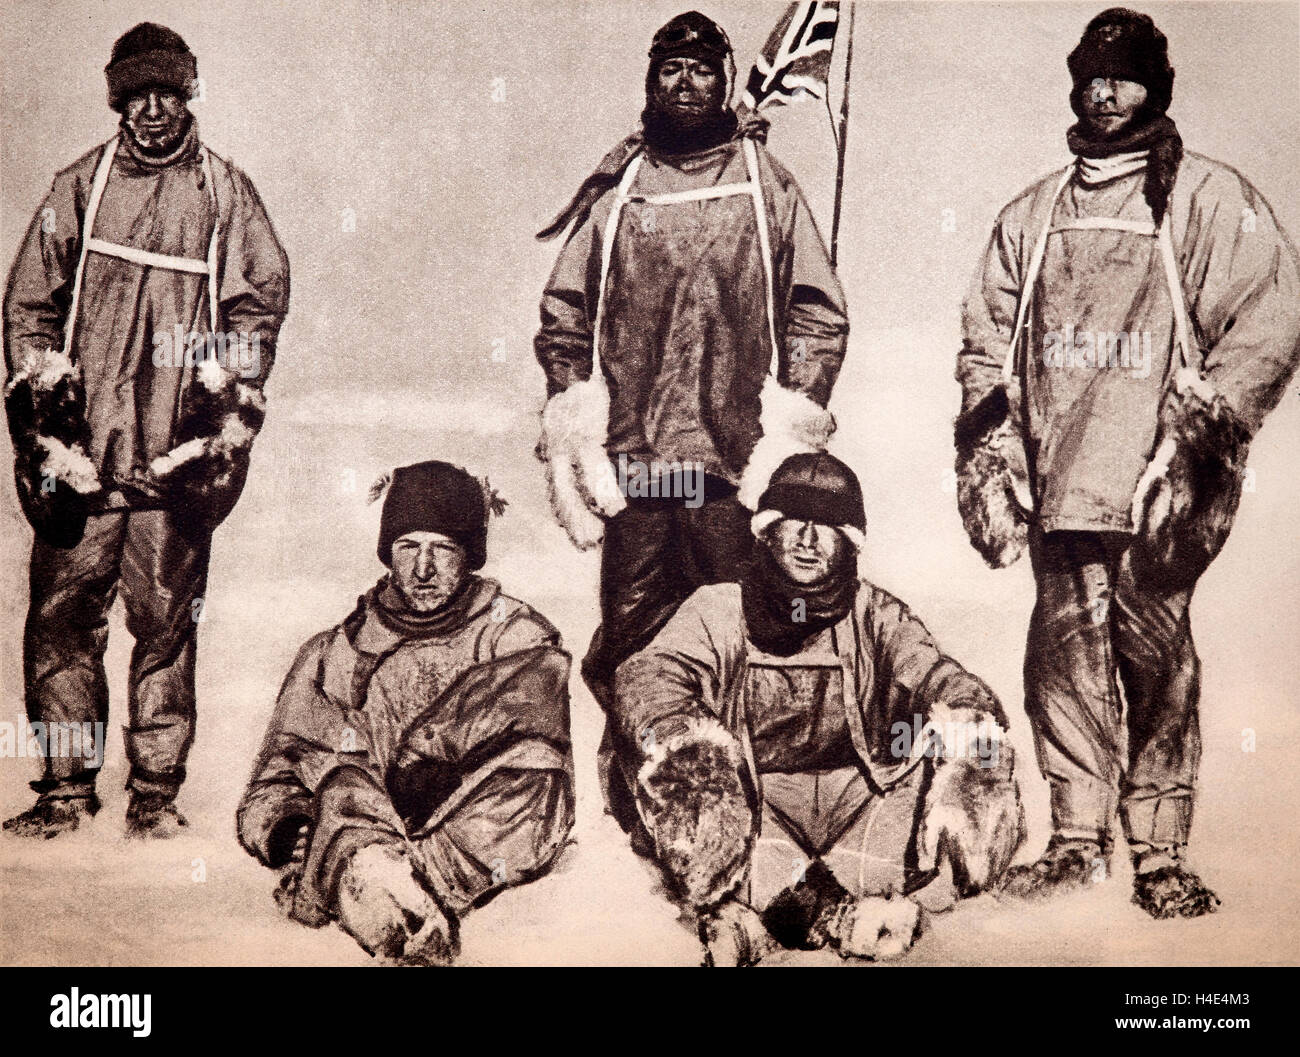 The ill-fated members of the Scott Expedition at the South Pole on 18th January 1912. L to R: (standing) Wilson, - Stock Image